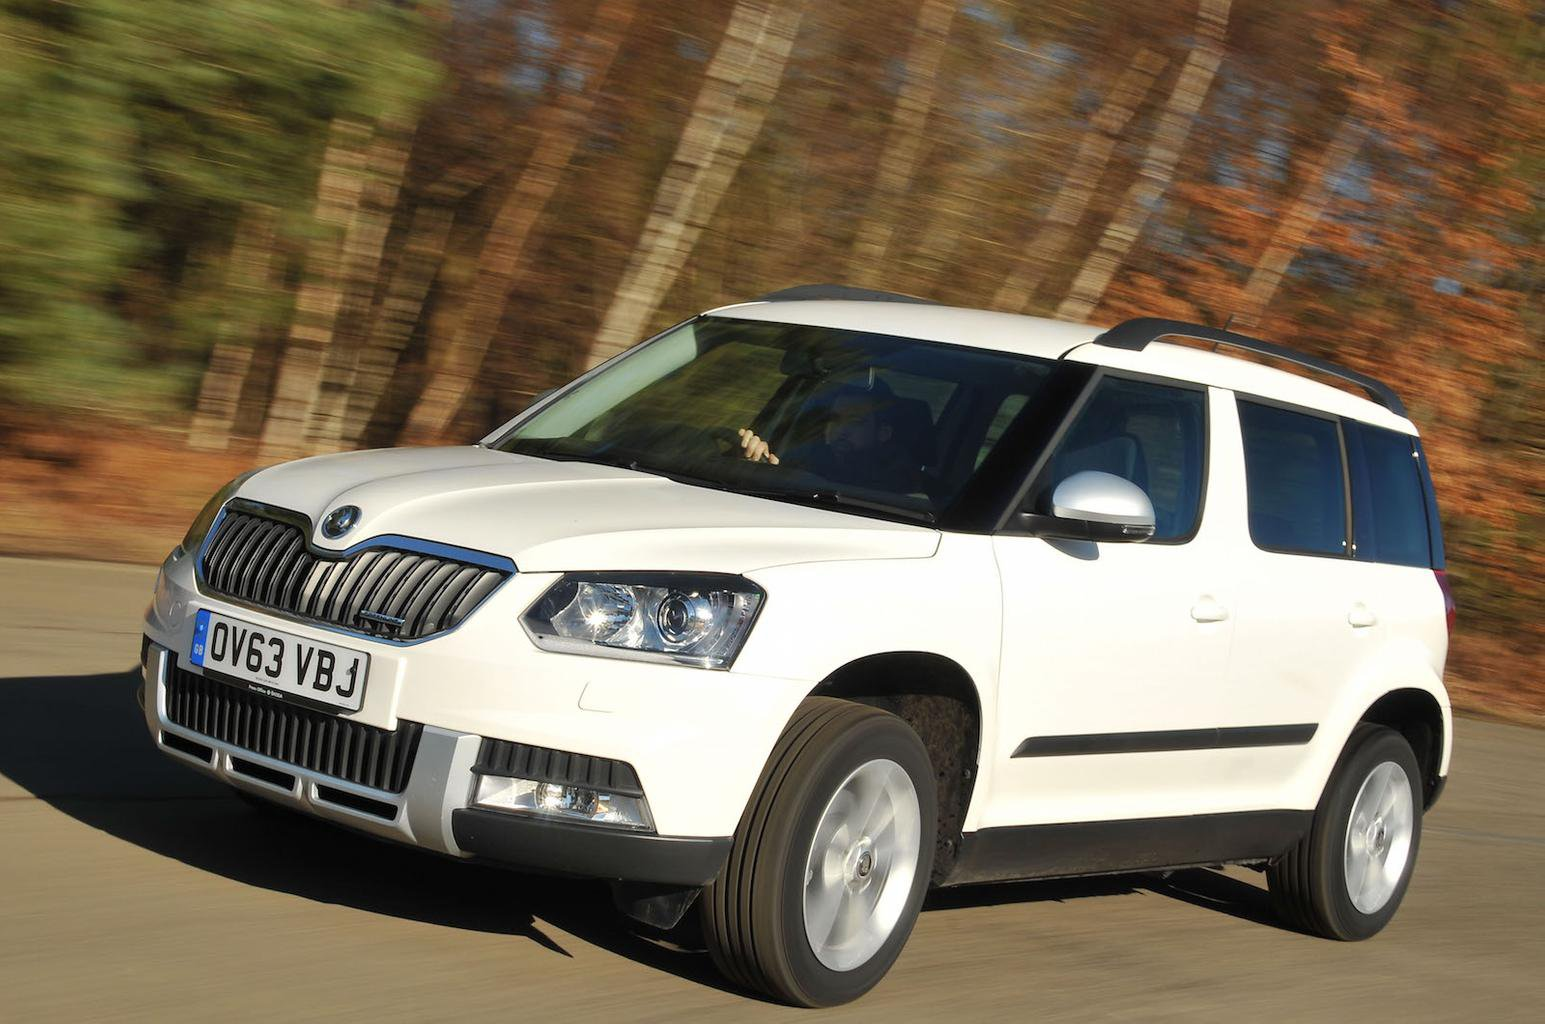 Top 10 used SUVs for less than £10,000